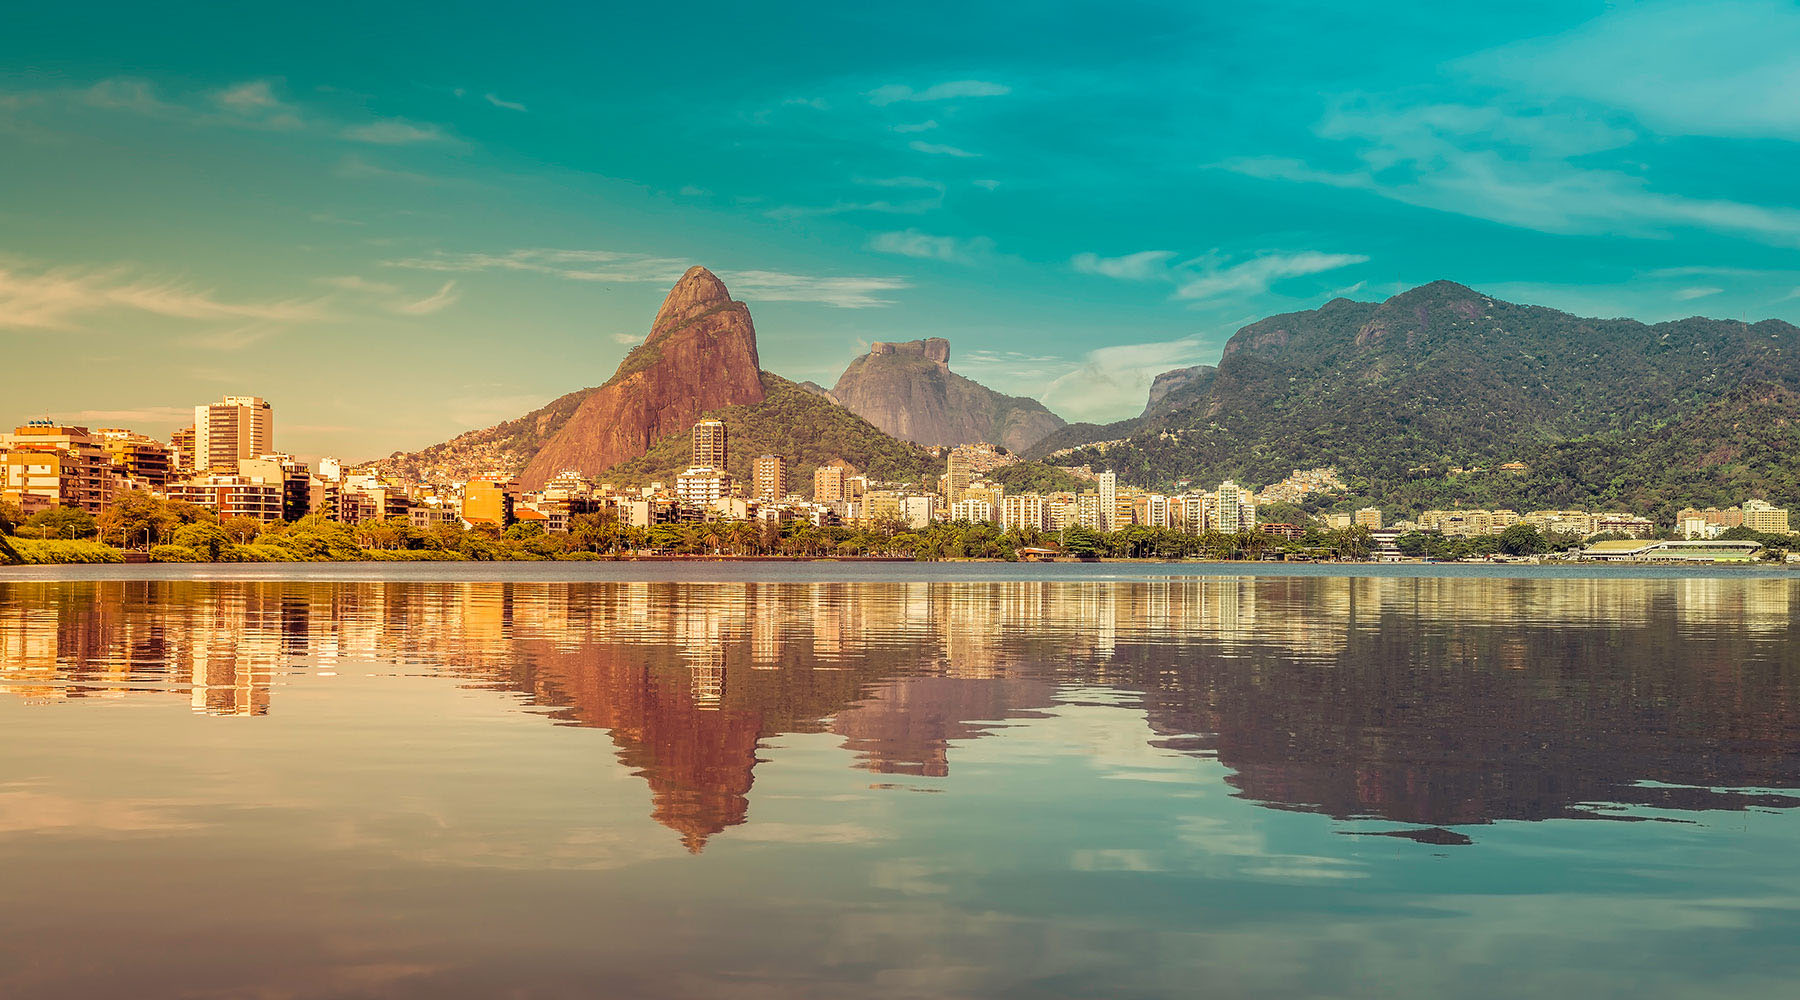 12-Night Rio Intensive Voyage